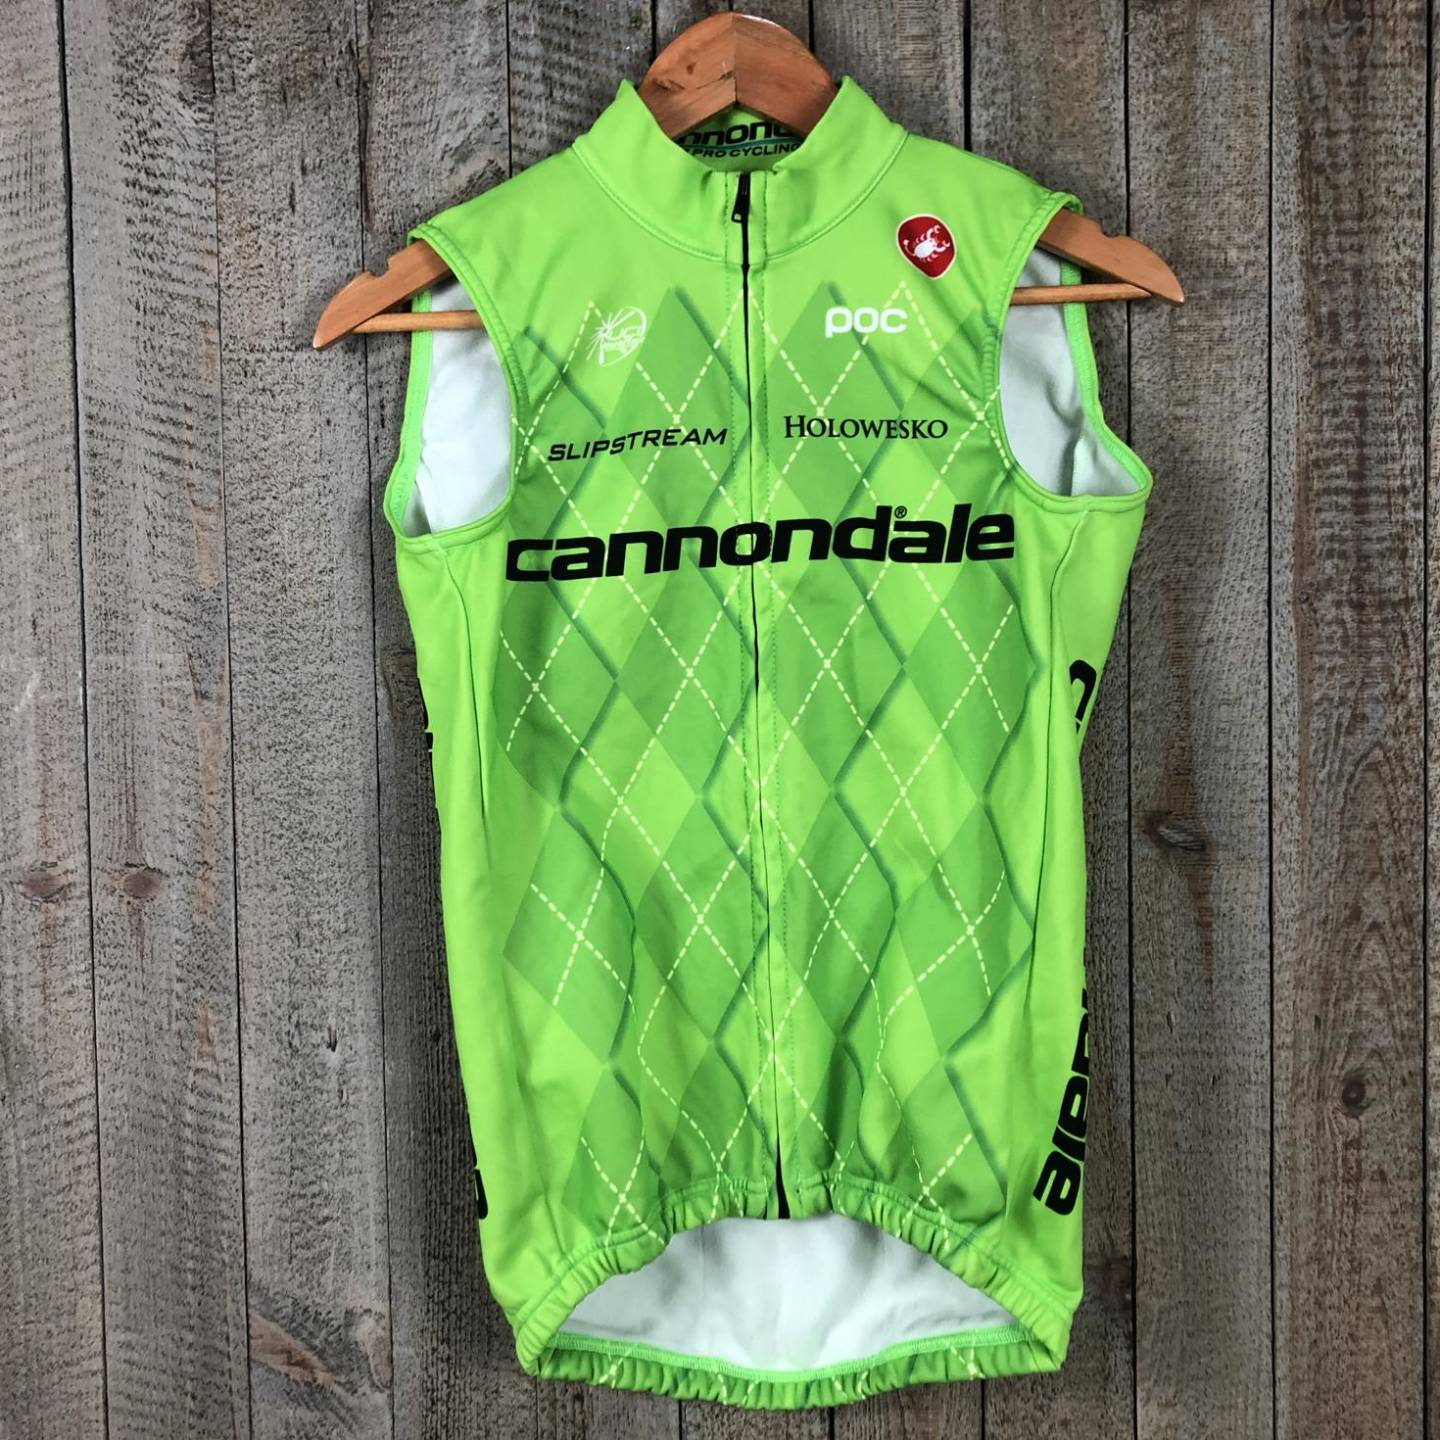 Thermal Vest - Cannondale 00002120 (1)